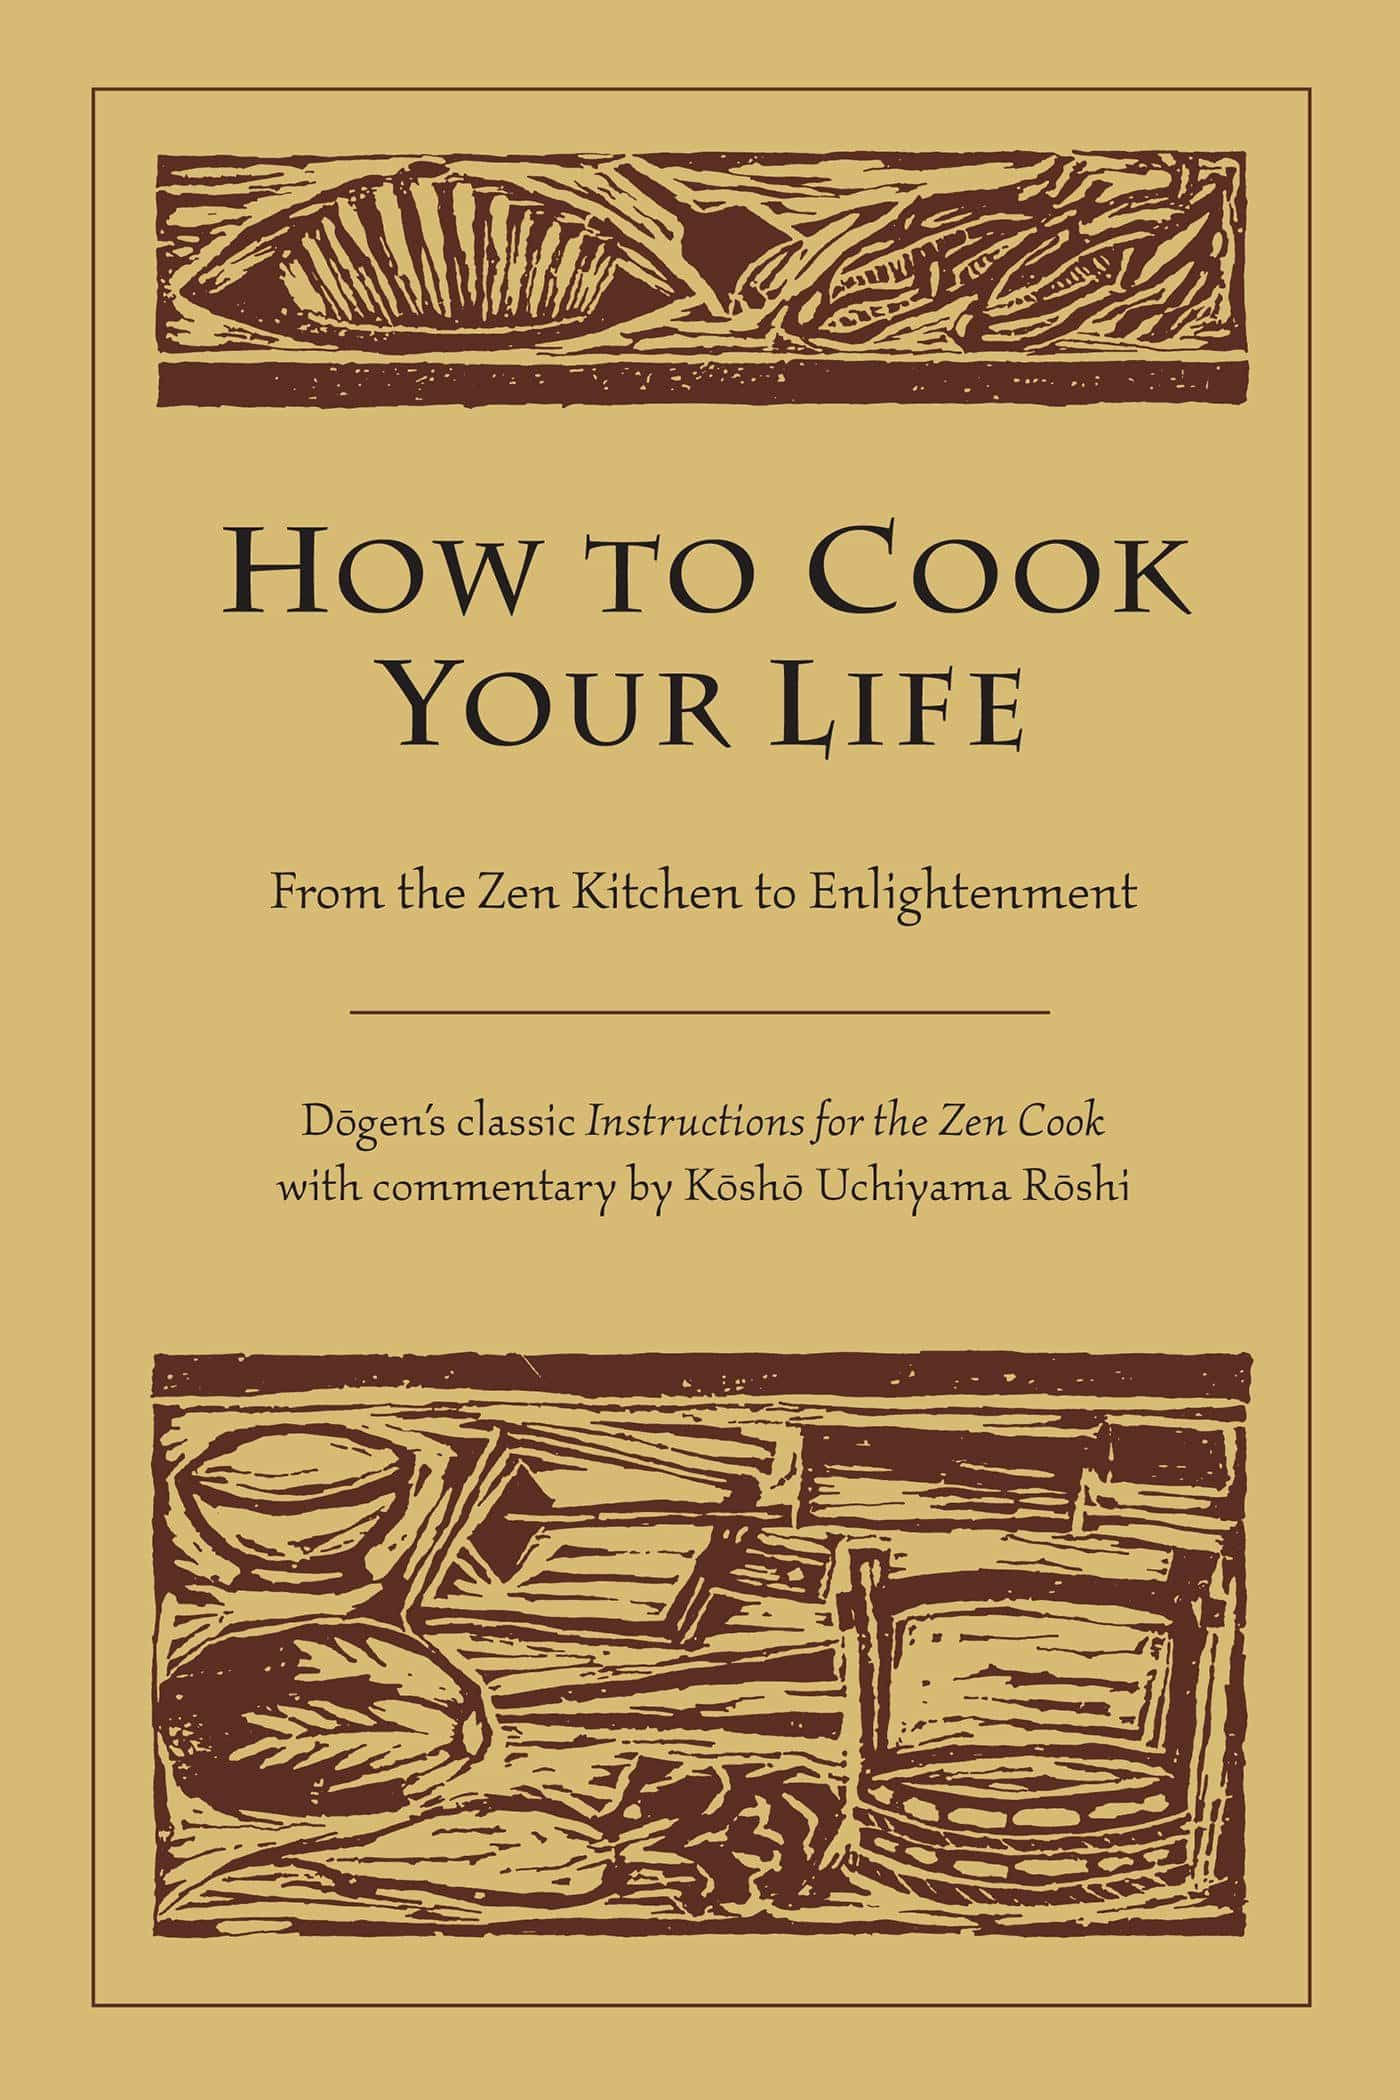 The cover of How To Cook Your Life